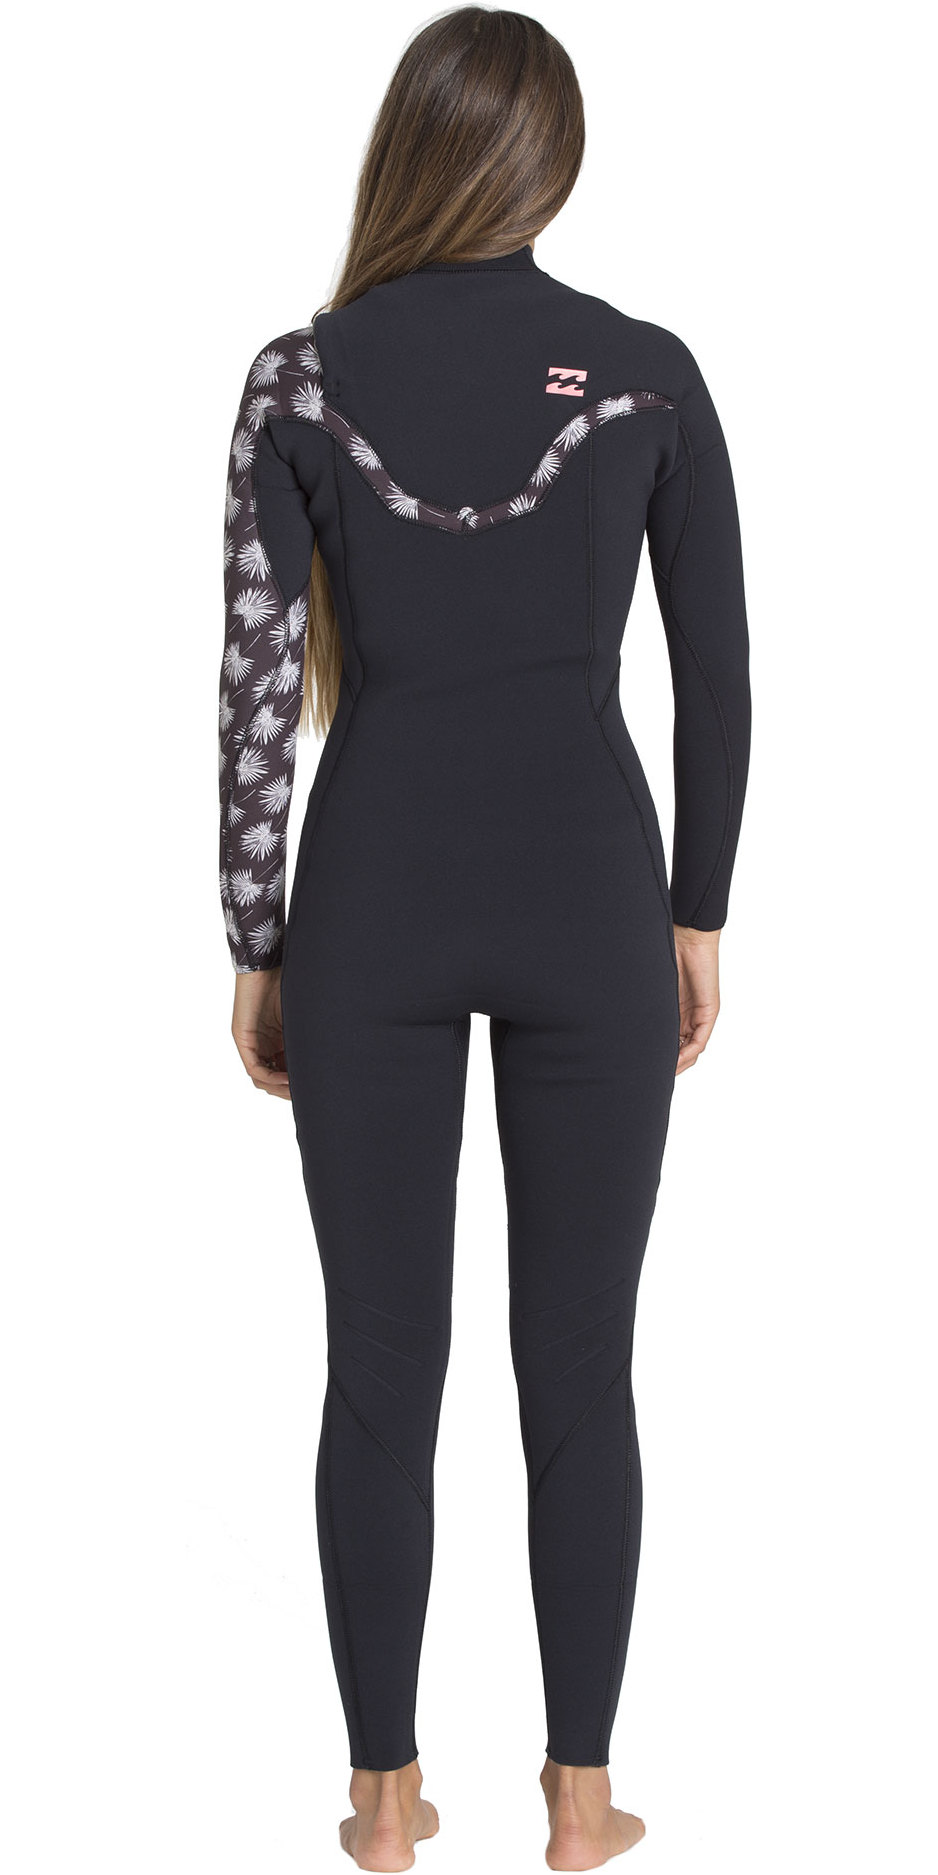 2019 Billabong Womens 4/3mm Furnace Carbon Comp Chest Zip Wetsuit Black Print N44G30